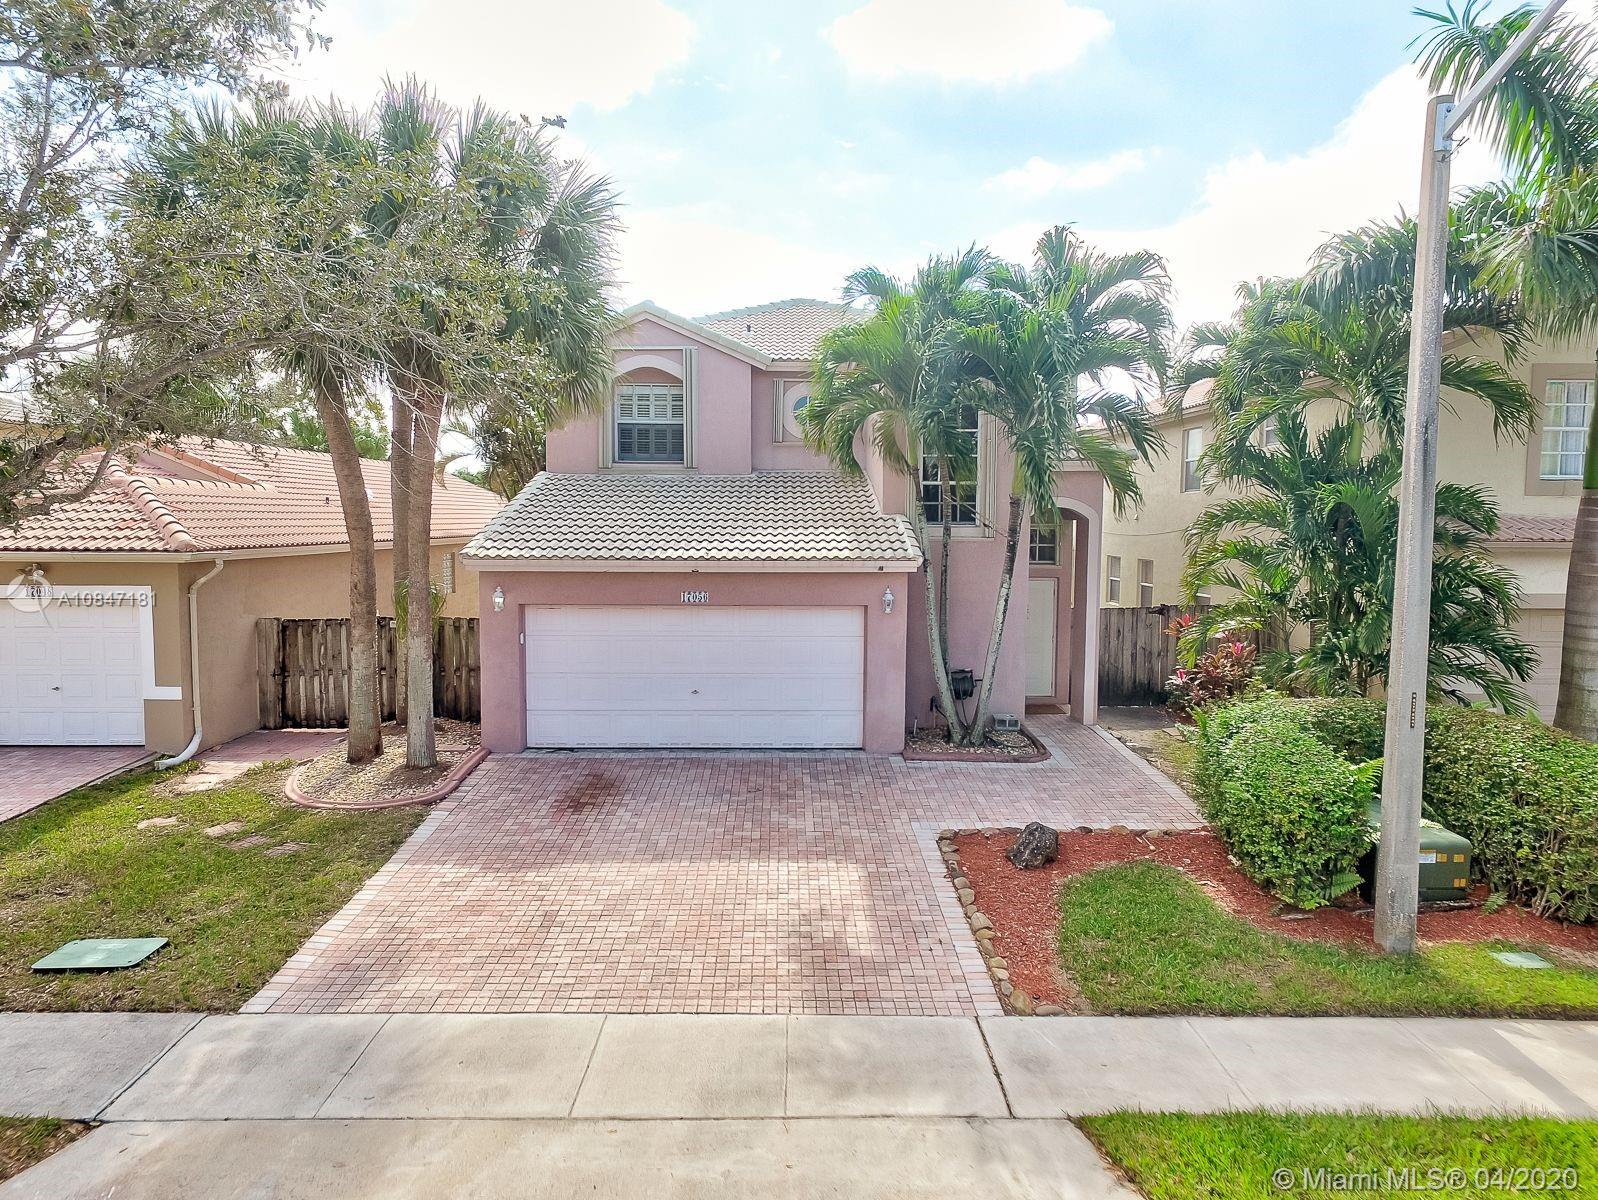 it is a steal!!! buying below market value. Fantastic 4 Bed, 2.5 Batch + Bonus Loft Home in Amazing Pembroke Isles. Features Updated kitchen with Granite tops, Stainless steel appliances, Breakfast nook, Family, Living and Dining rooms, Crown molding, Beautiful floors. All bed rooms on second floor, master suite with Tray ceilings on first floor, spa like master bath with frameless shower & soakin tub. Accordion hurricane shutters, low maintenance yard in front, all back is patio for kids play, 2 car garage. Community with elegant guarded entry, mature landscaping with resort style amenities including fully equipped fitness center, clubhouse, 2 pavilions, sauna, 4 swimming pools, 2 spas, aerobics studio, racquetball, basketball, soccer, Tennis & volleyball courts.